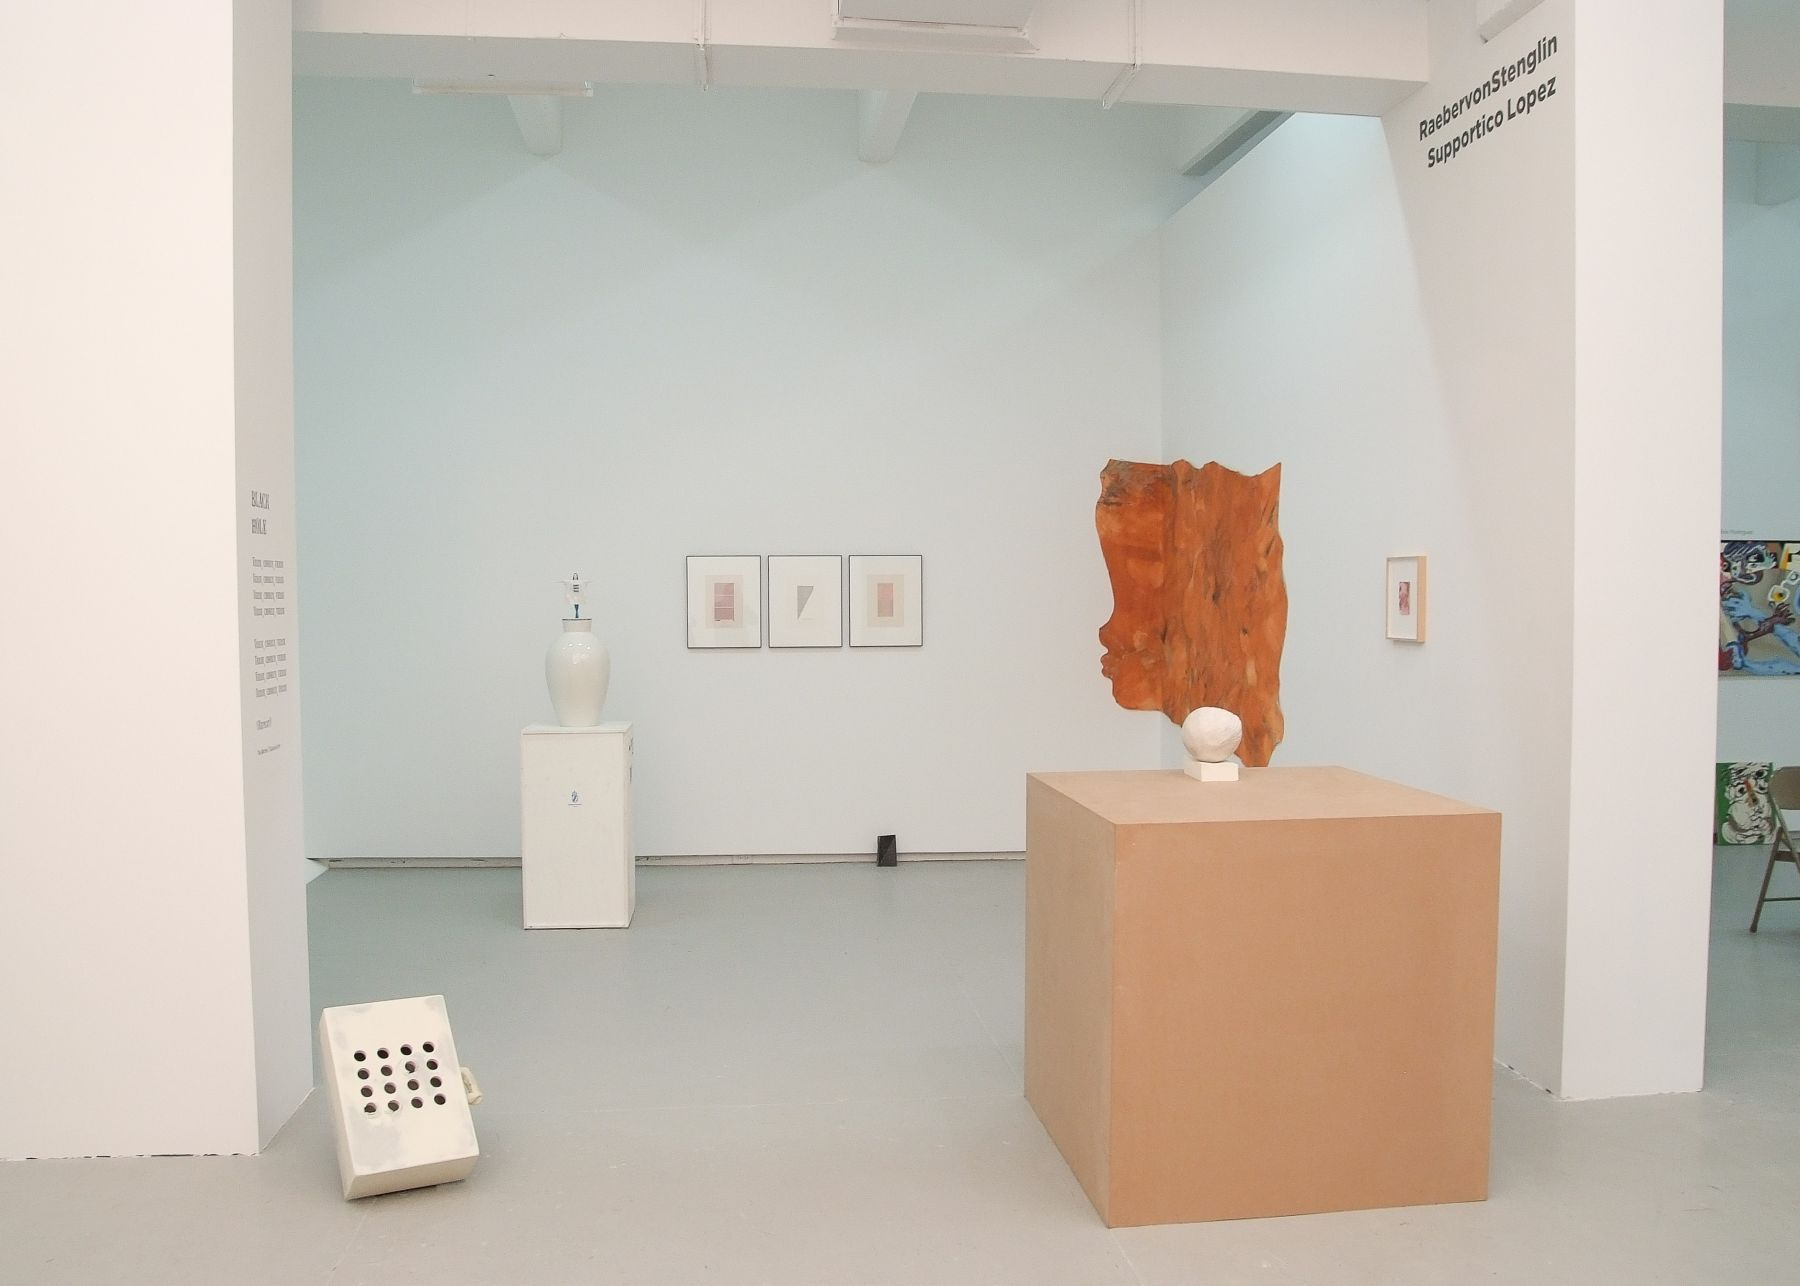 Supportico Lopez at Independent New York, 2012, exhibition view